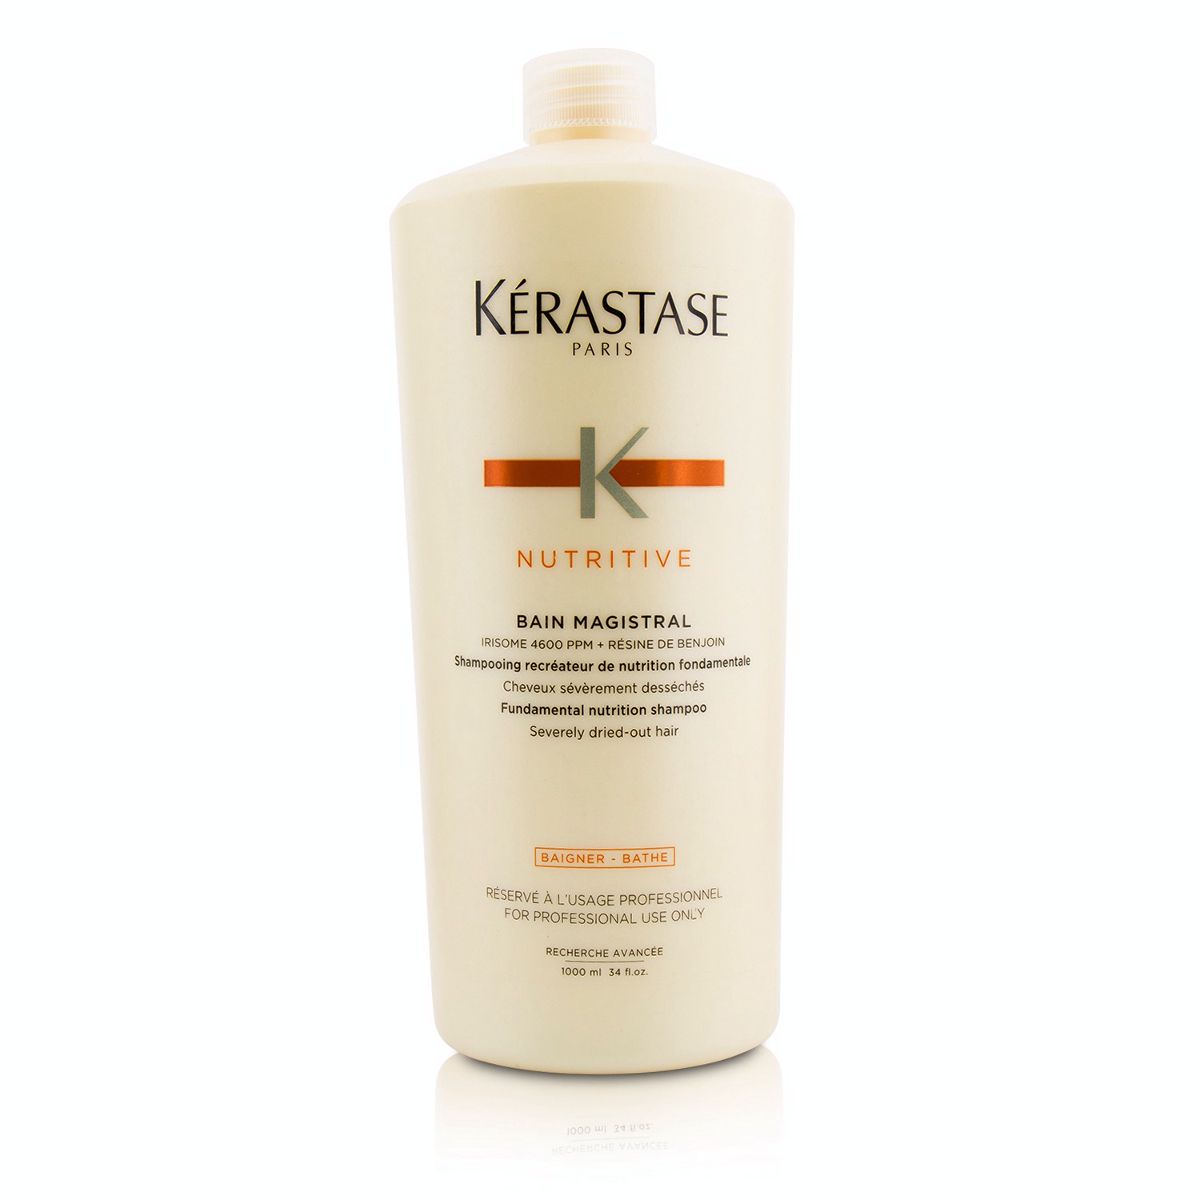 Nutritive Bain Magistral Fundamental Nutrition Shampoo (Severely Dried-Out Hair)  1000ml/33.8oz